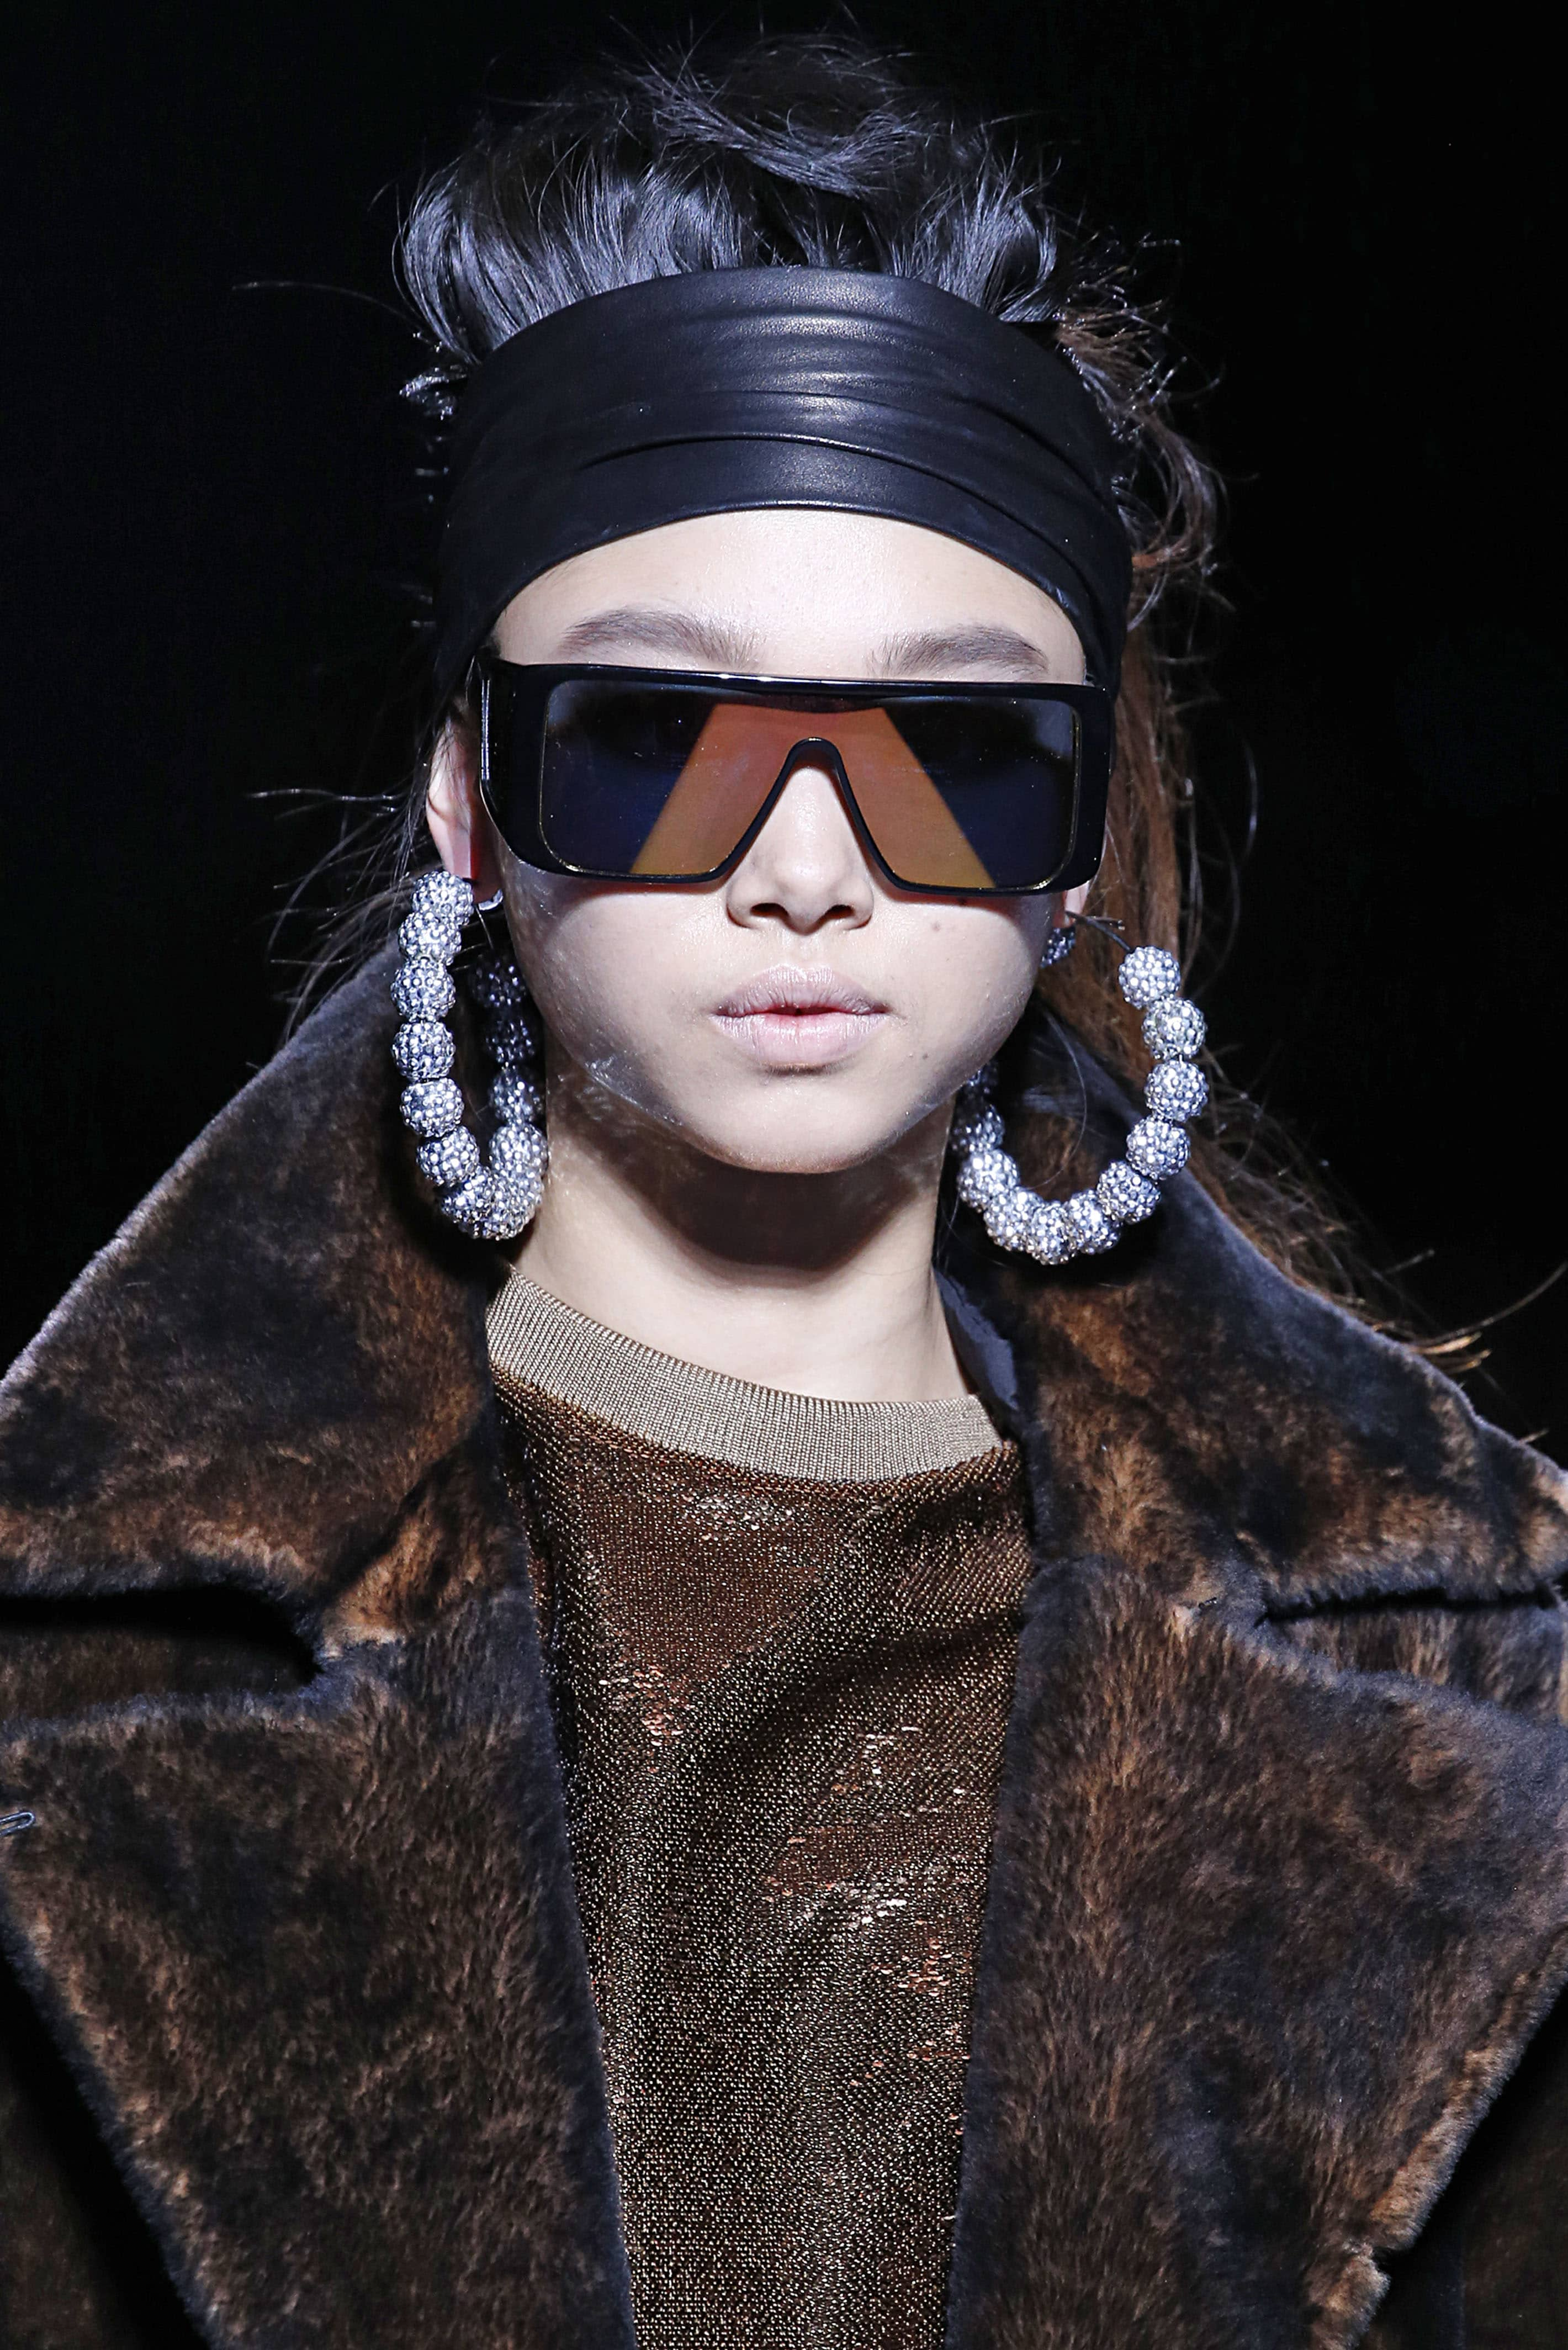 Tom Ford's 80's inspired hoops. Image: Courtesy Victor VIRGILE/Gamma-Rapho via Getty Images